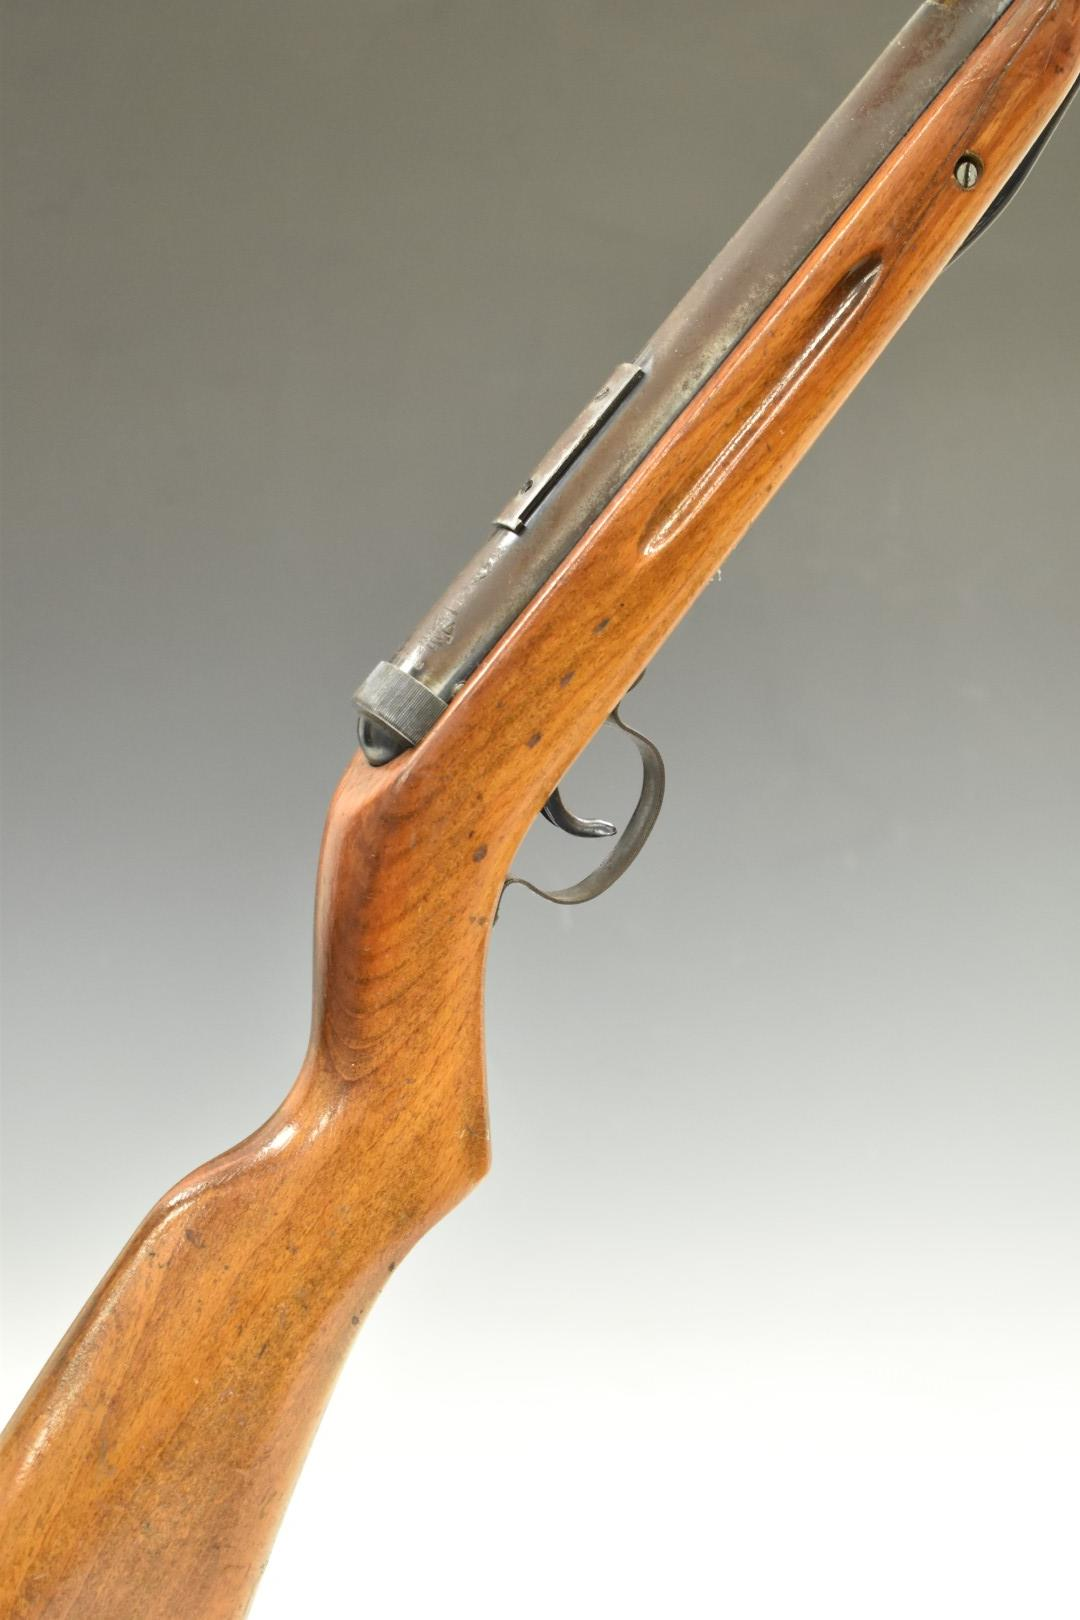 Diana Model 25 .22 air rifle with semi-pistol grip and scope rail, NVSN.